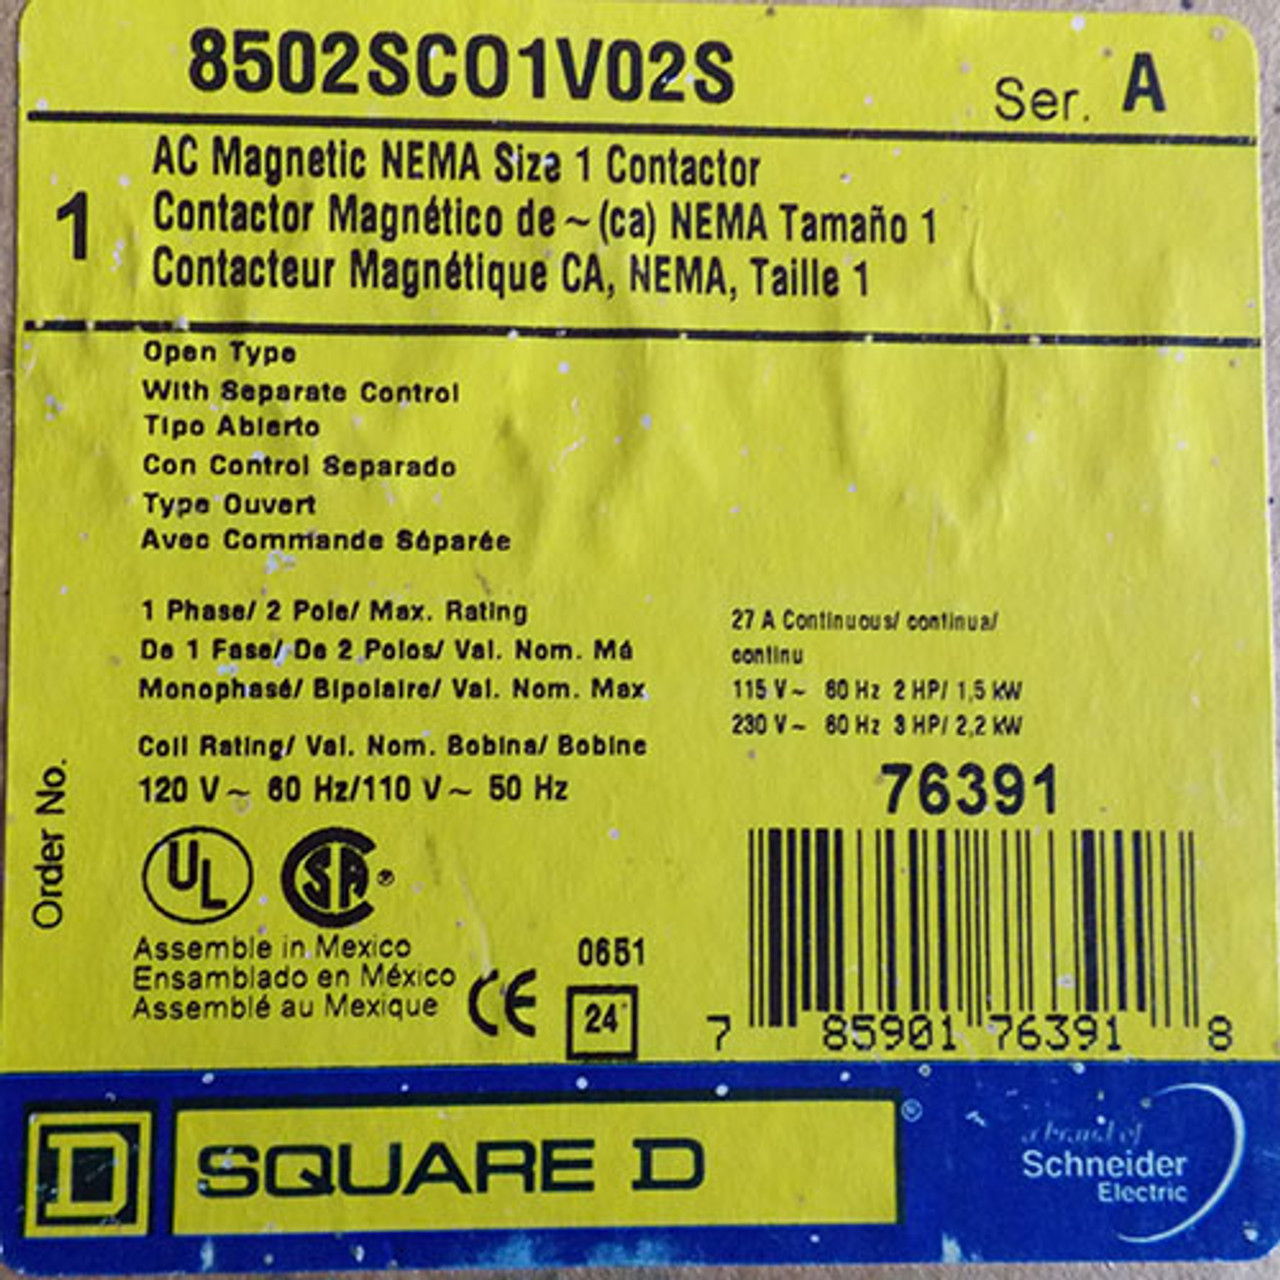 Square D 8502SCO1V02S Sz 1 AC Magnetic Contactor 27A 1PH 2P Open - New